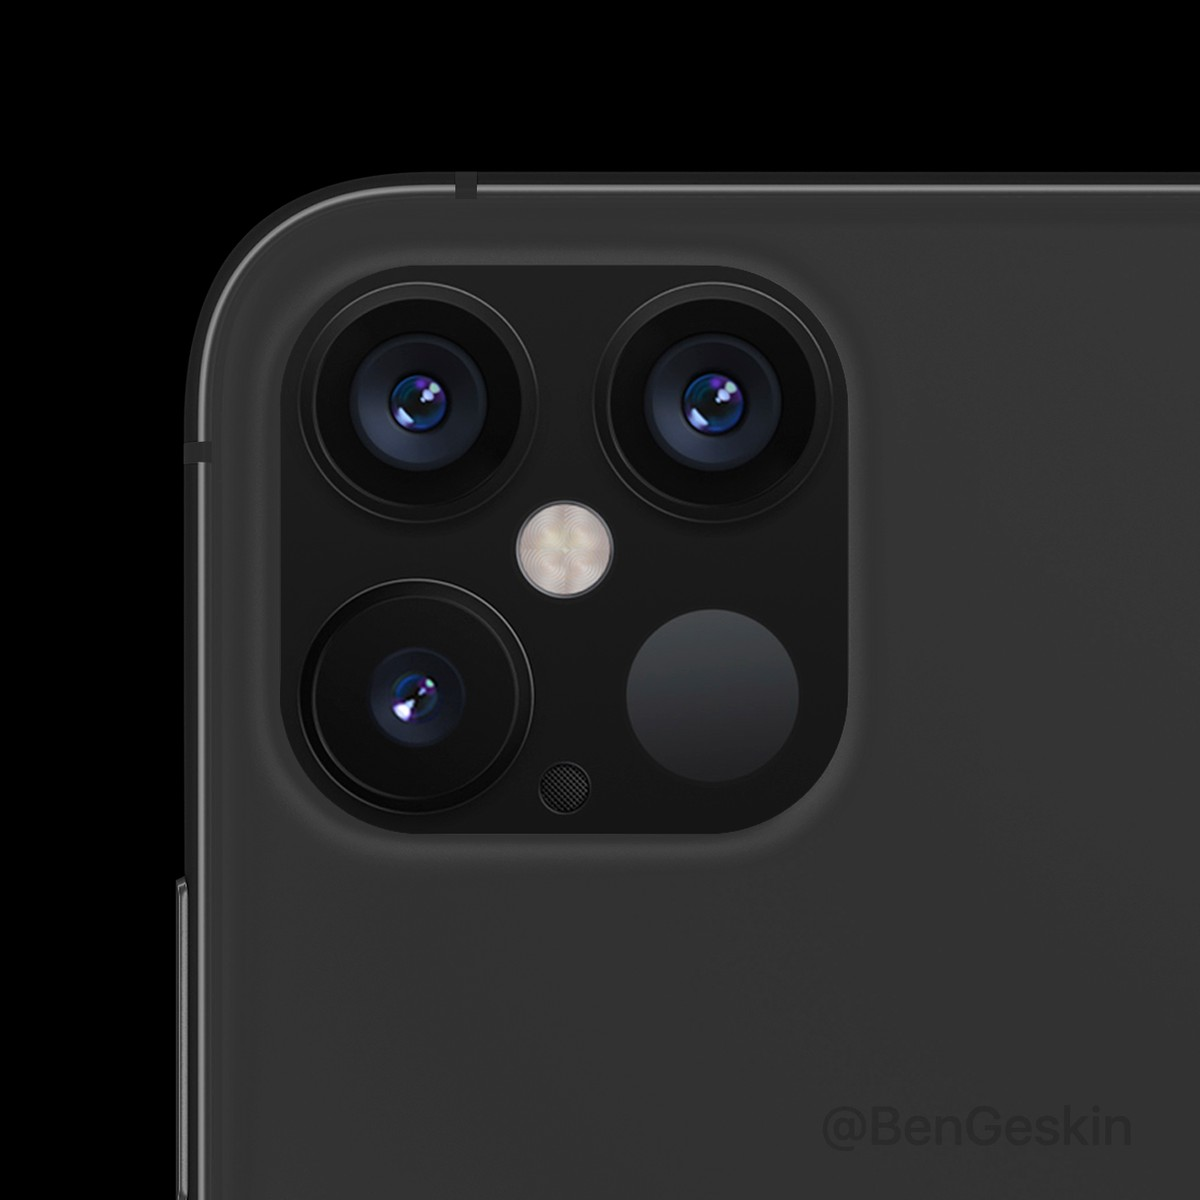 Apple iPhone 12 Pro and 12 Pro Max may also include a ToF sensor